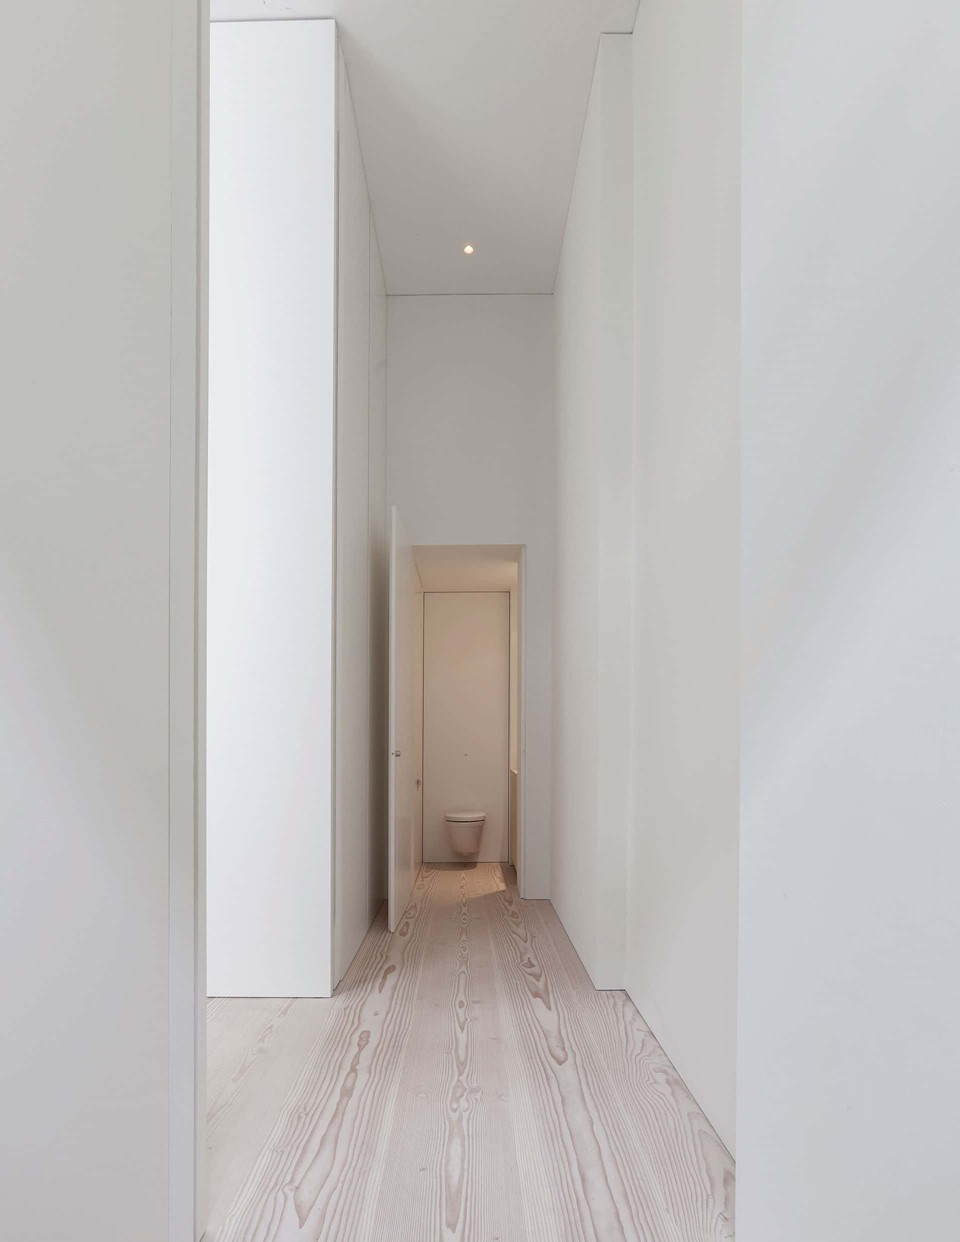 douglas-plank-floor_lye-and-natural-oil_coach-house-amsterdam_hallway_dinesen.jpg